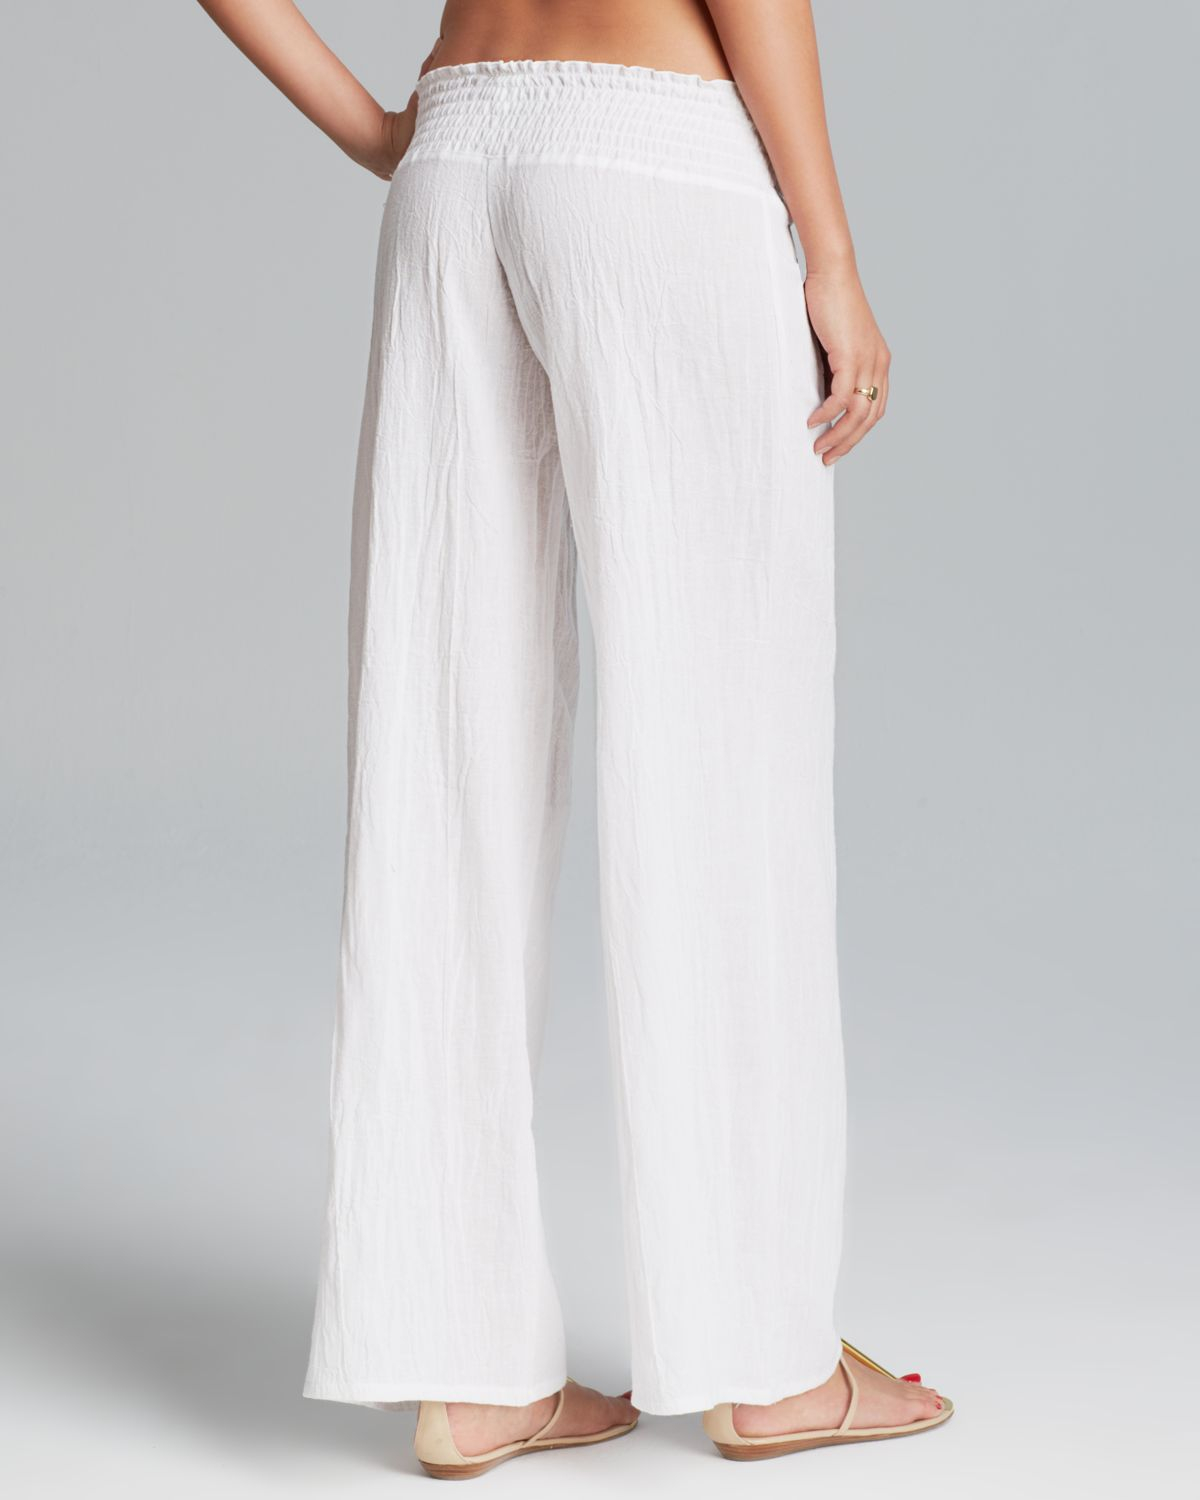 Debbie katz Gauze Swim Cover Up Pants in White | Lyst